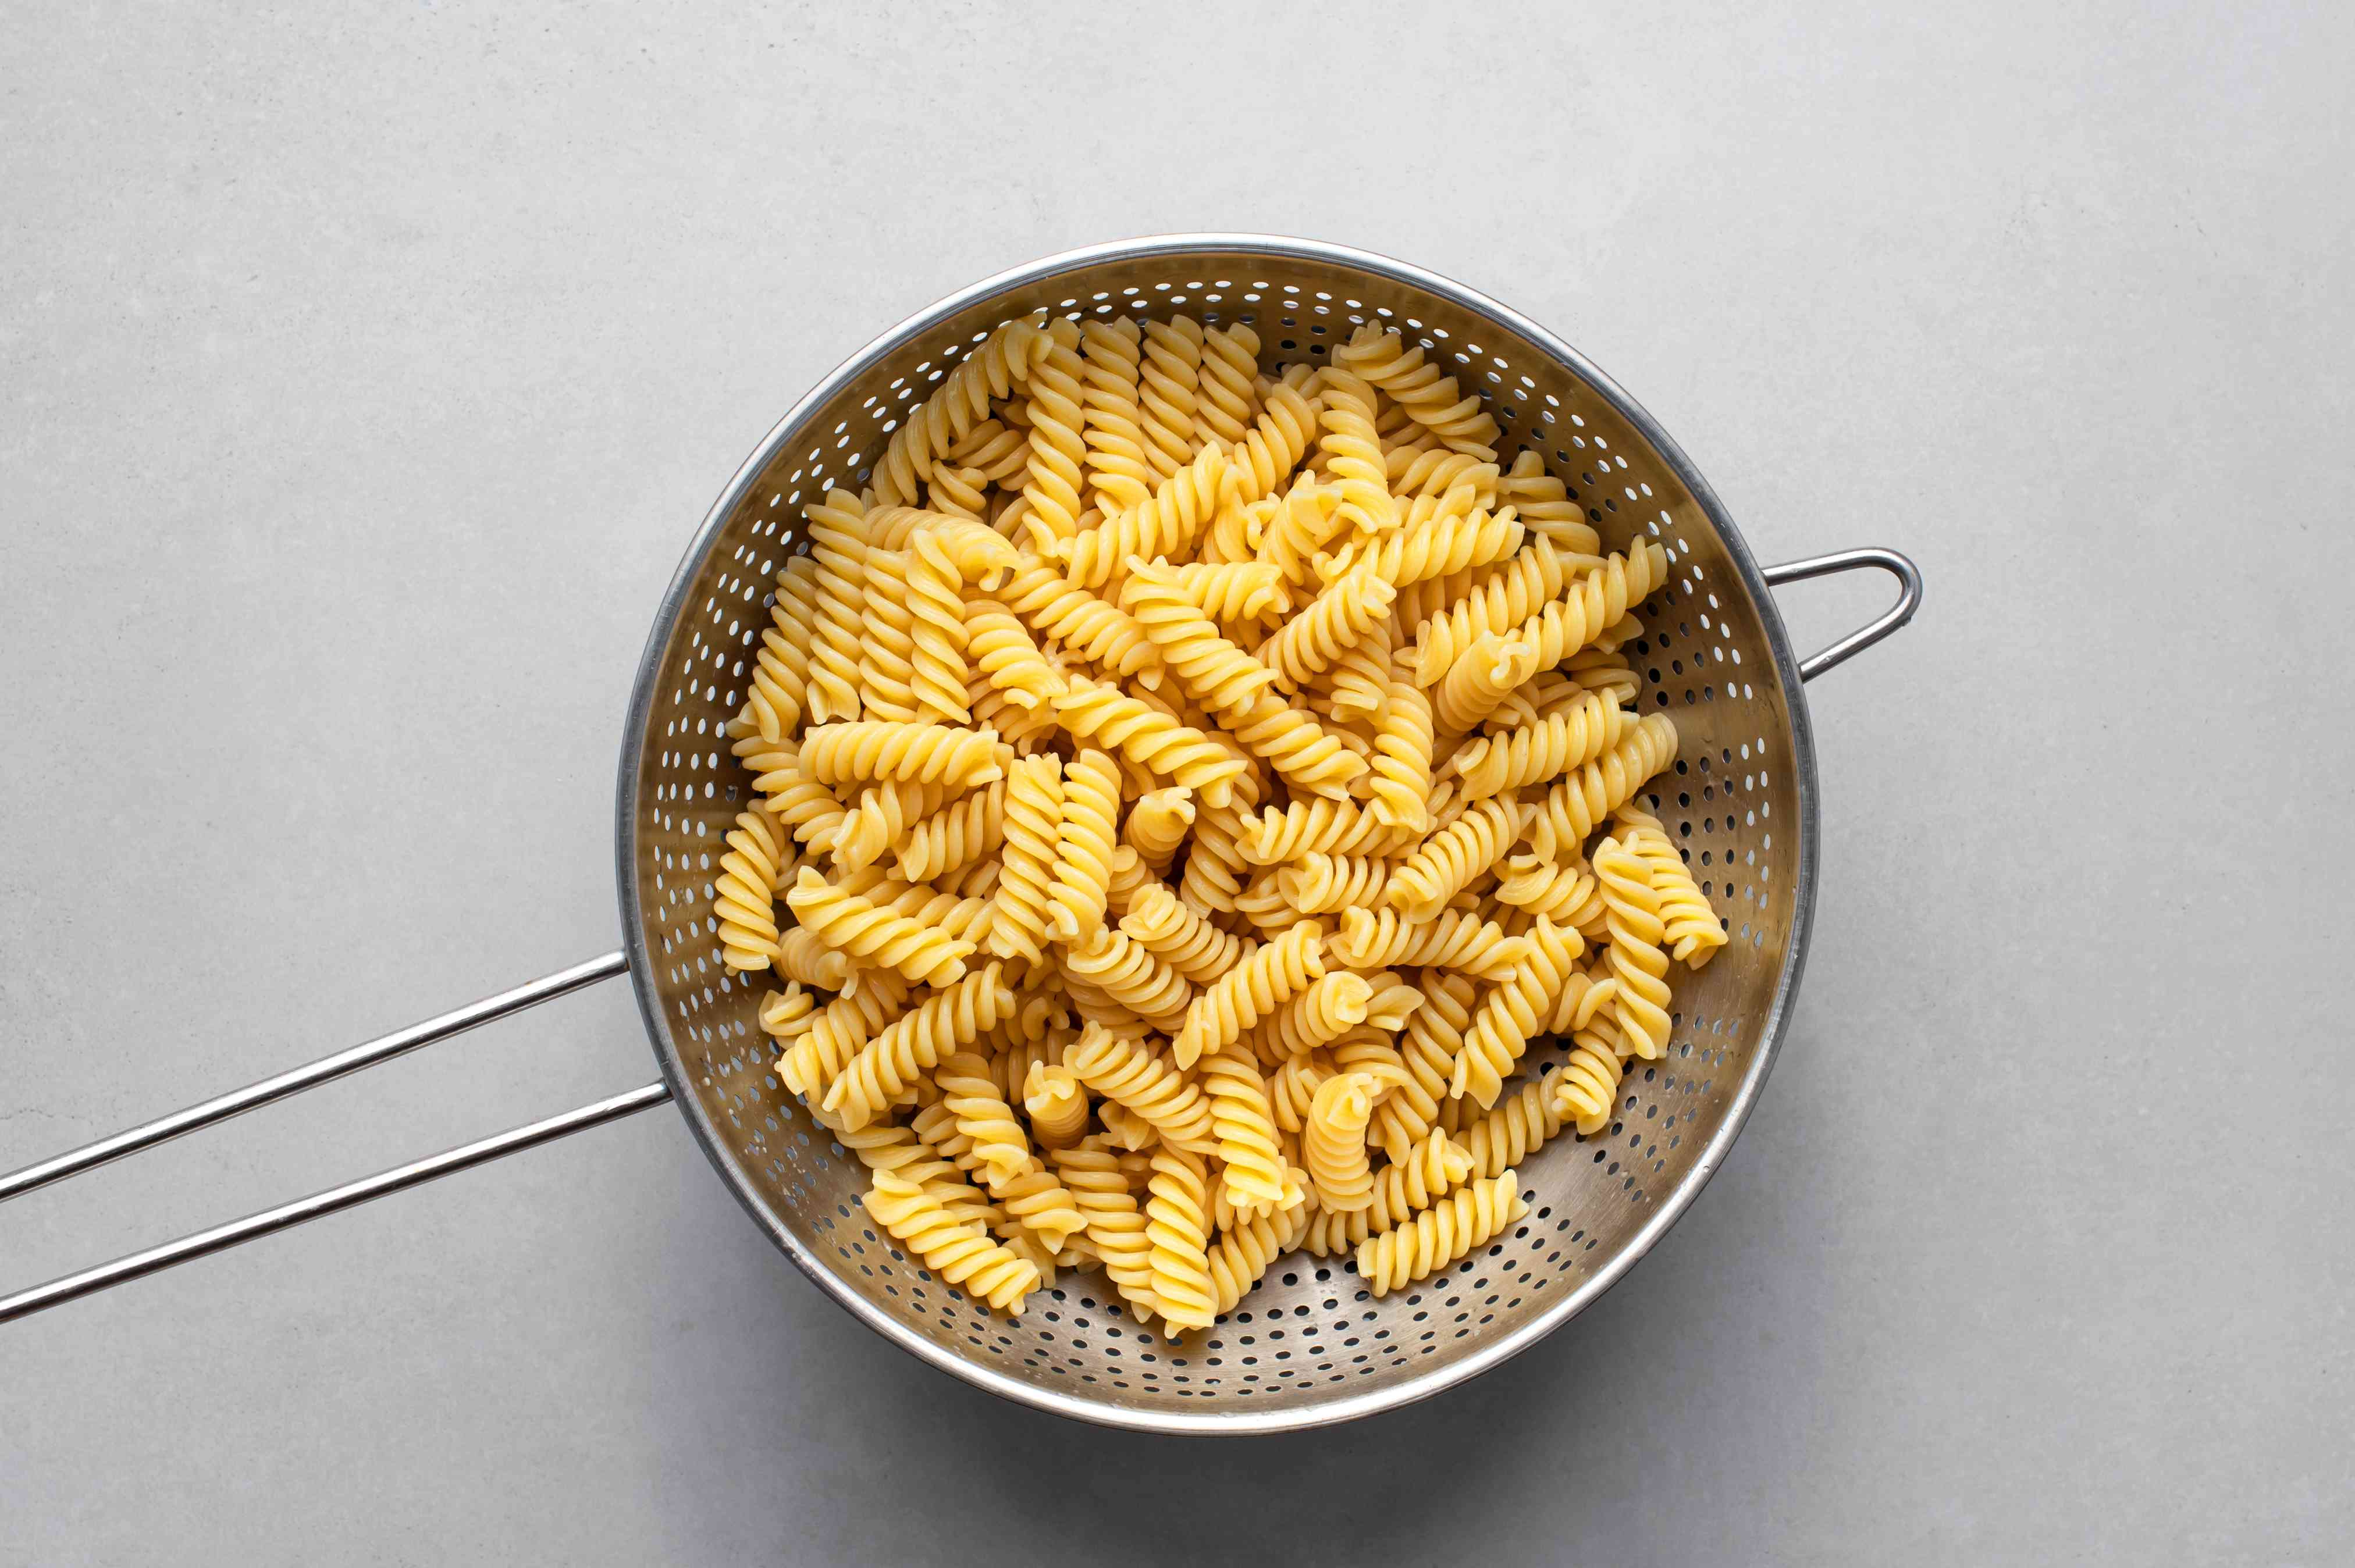 cooked pasta in a colander